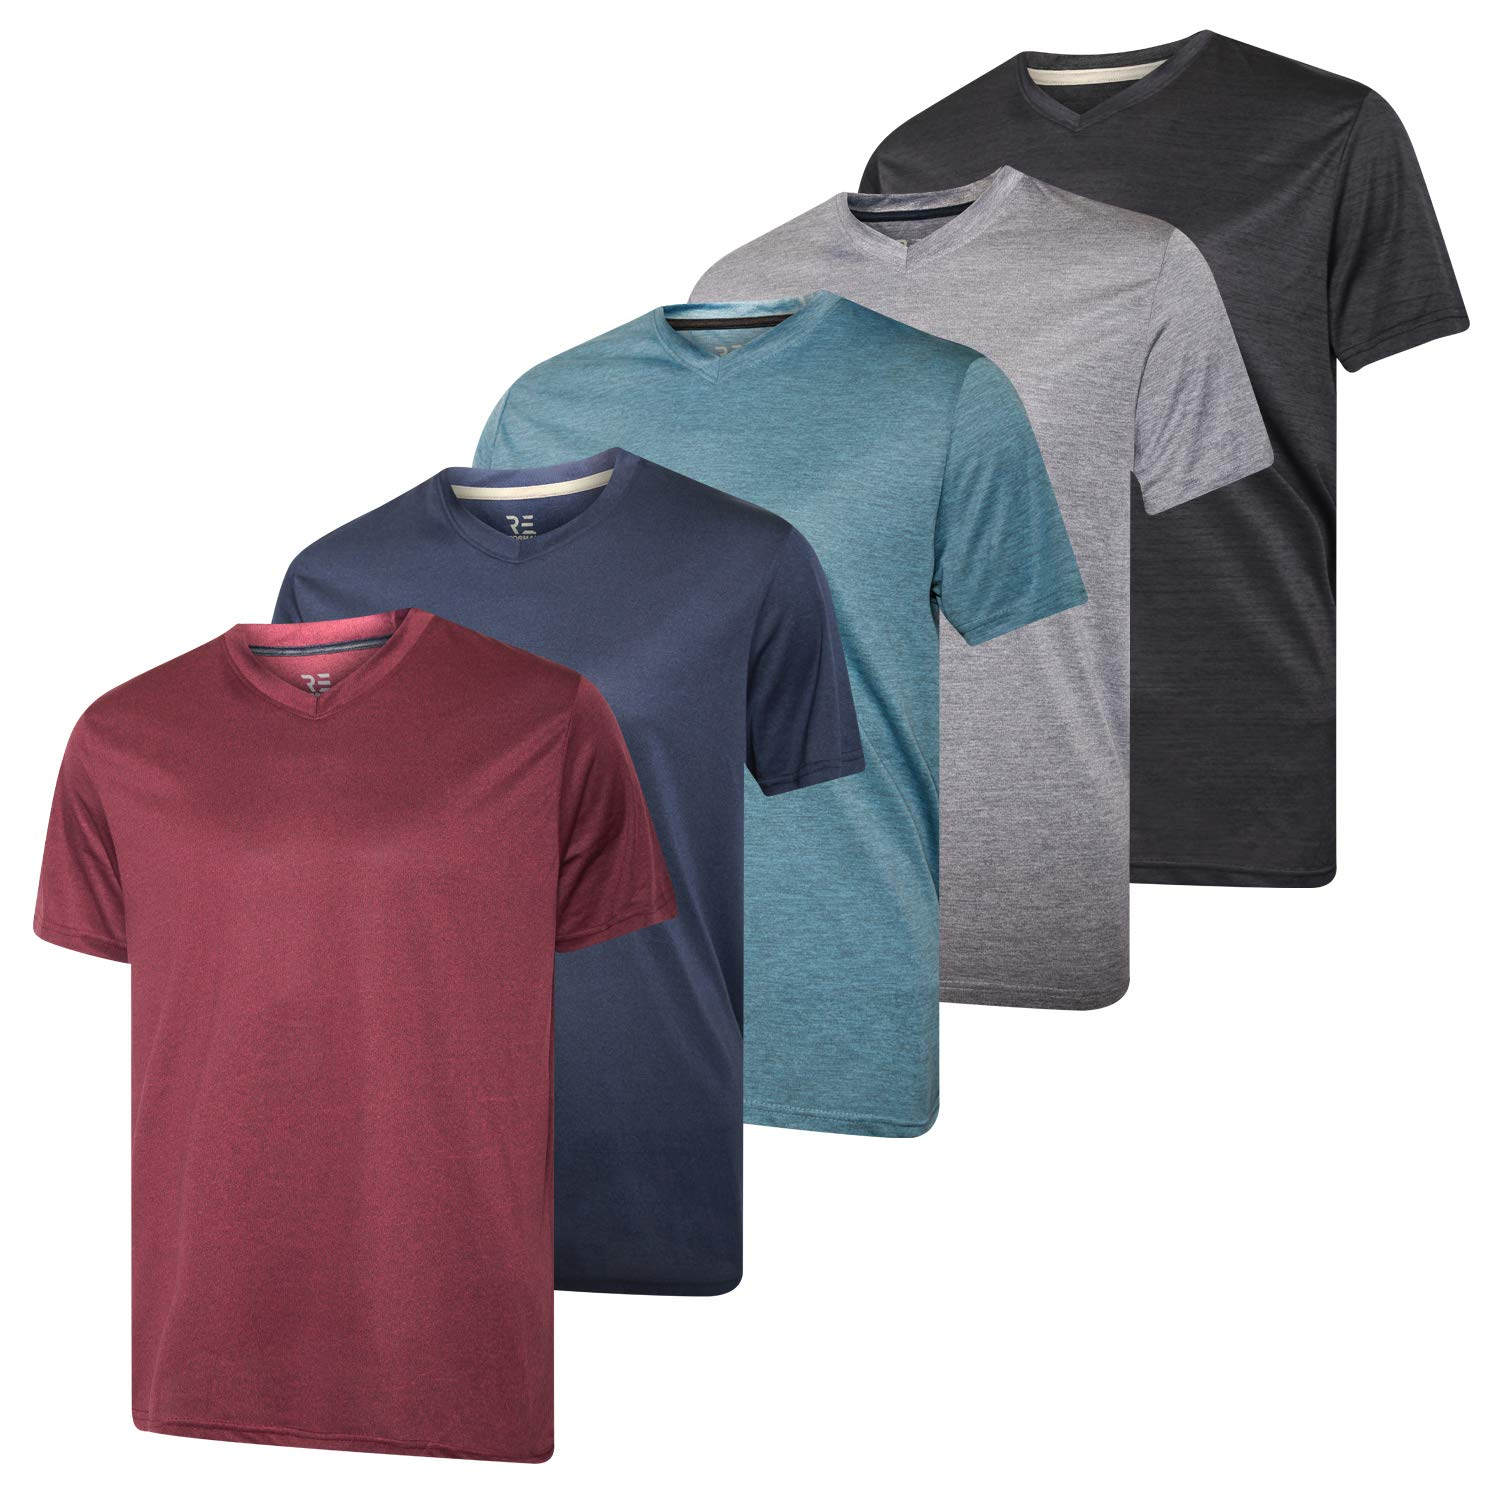 5 Pack:Men's V Neck Quick Dry Fit Dri-Fit Short Sleeve Active Wear Training Athletic Essentials T-Shirt Tee Fitness Gym Workout Undershirt Top-Set 1,M by Real Essentials